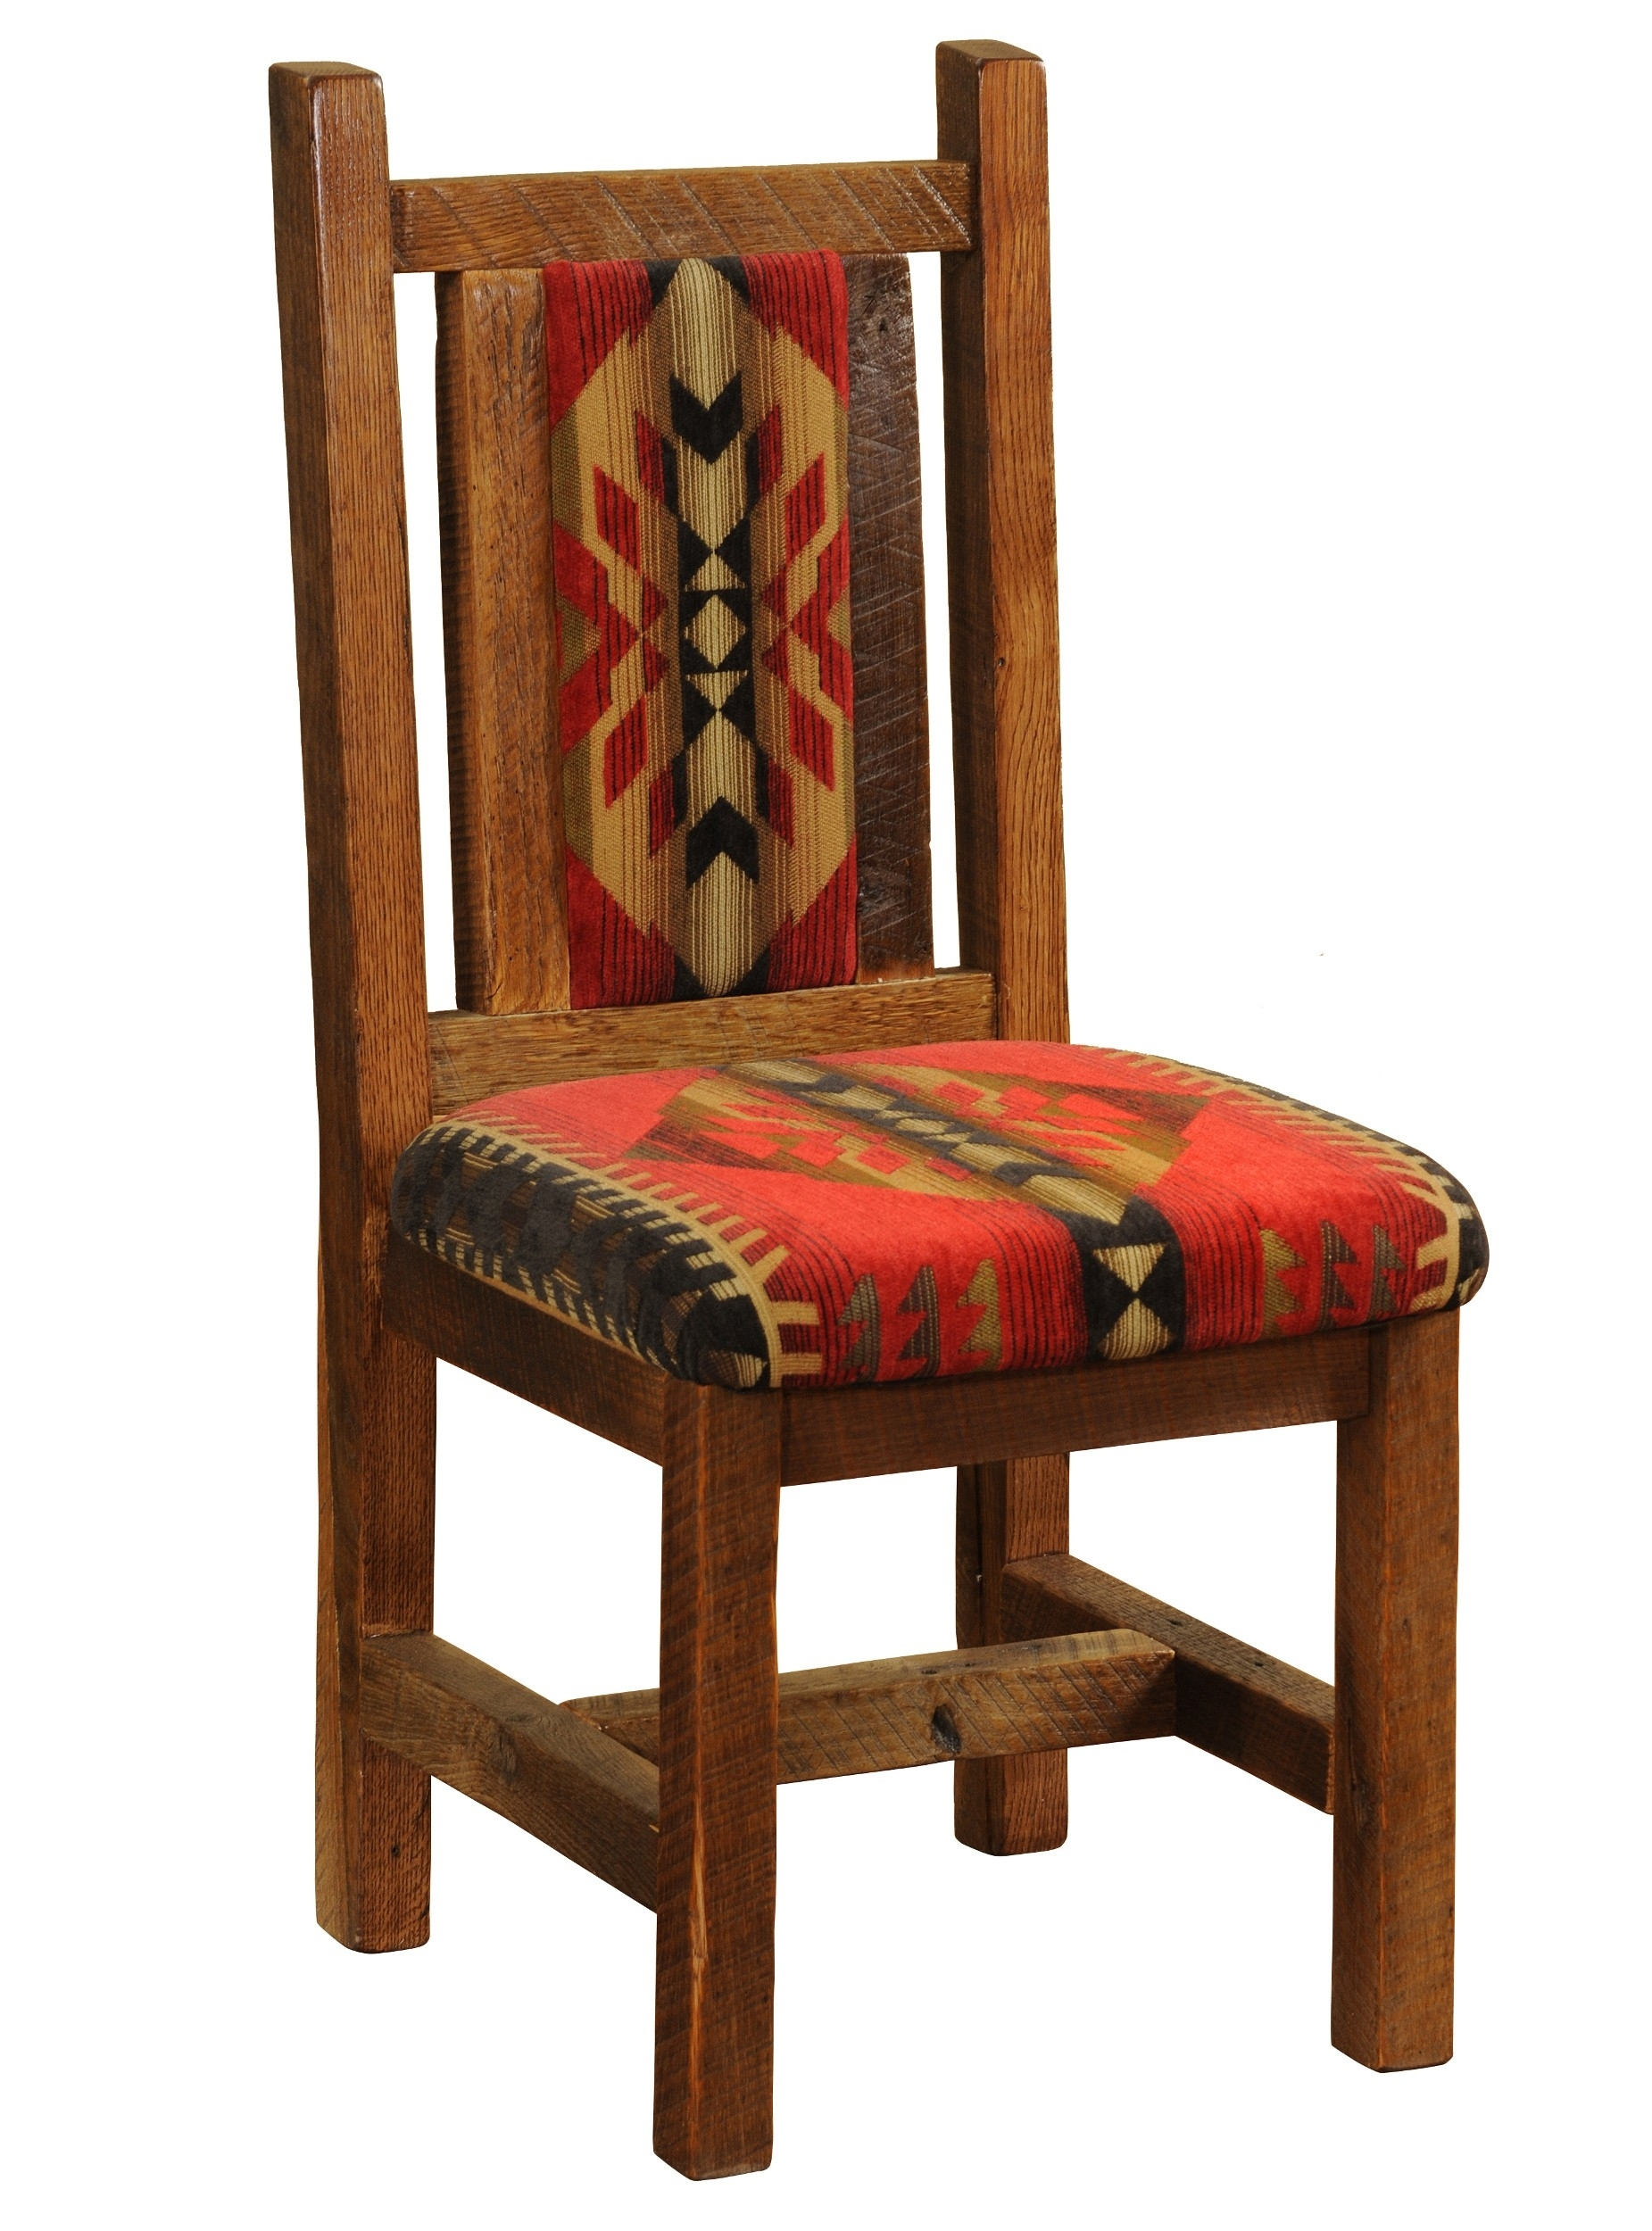 Craftsman Upholstered Side Chairs Within Best And Newest Barnwood Artisan Upholstered Side Chair (View 6 of 20)